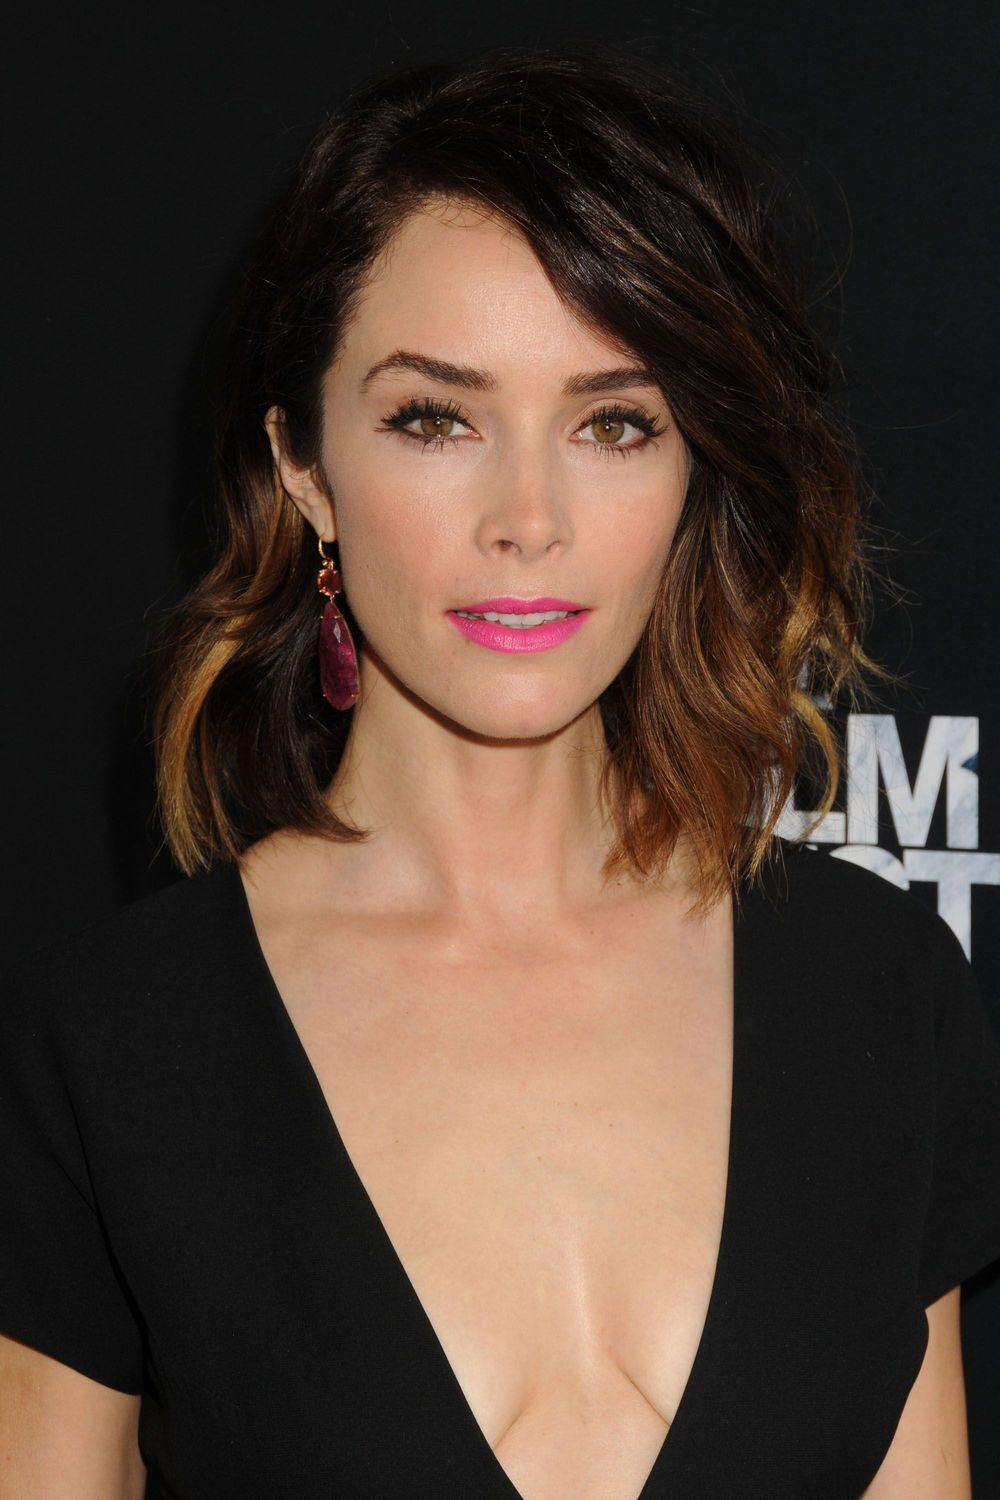 Abigail Spencer Cleavage (3 Photos)